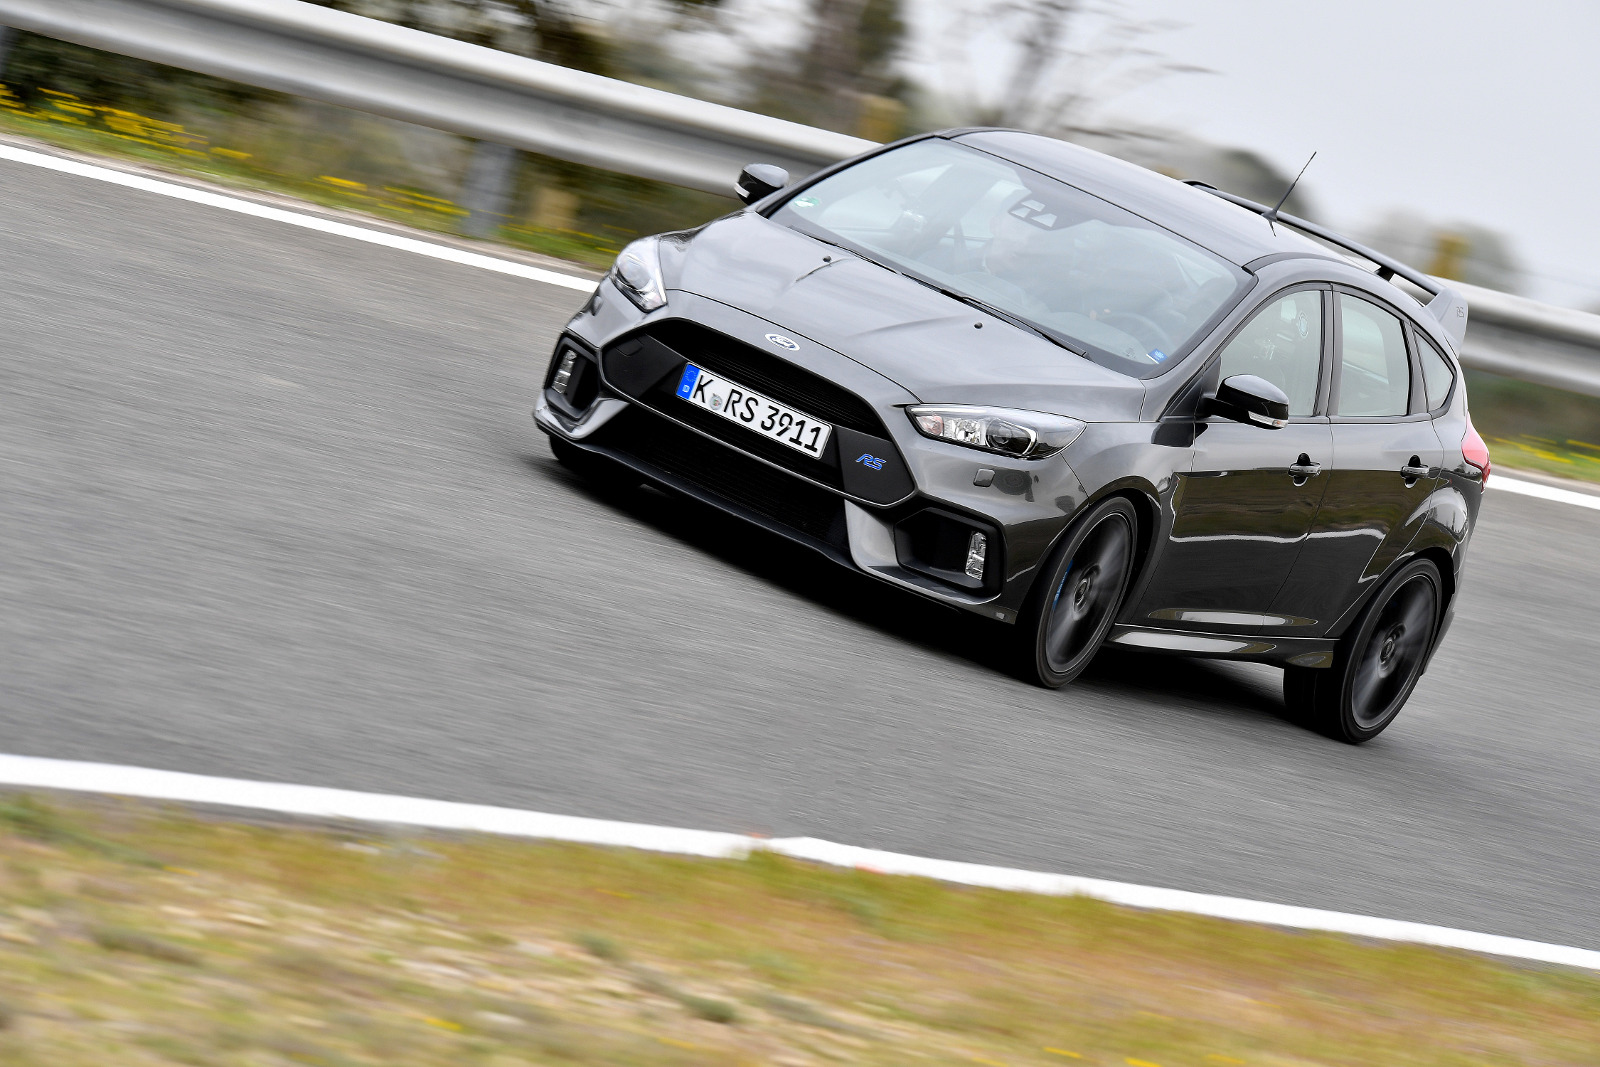 essai ford focus rs mkiii hot hatch sauce lba test drive. Black Bedroom Furniture Sets. Home Design Ideas